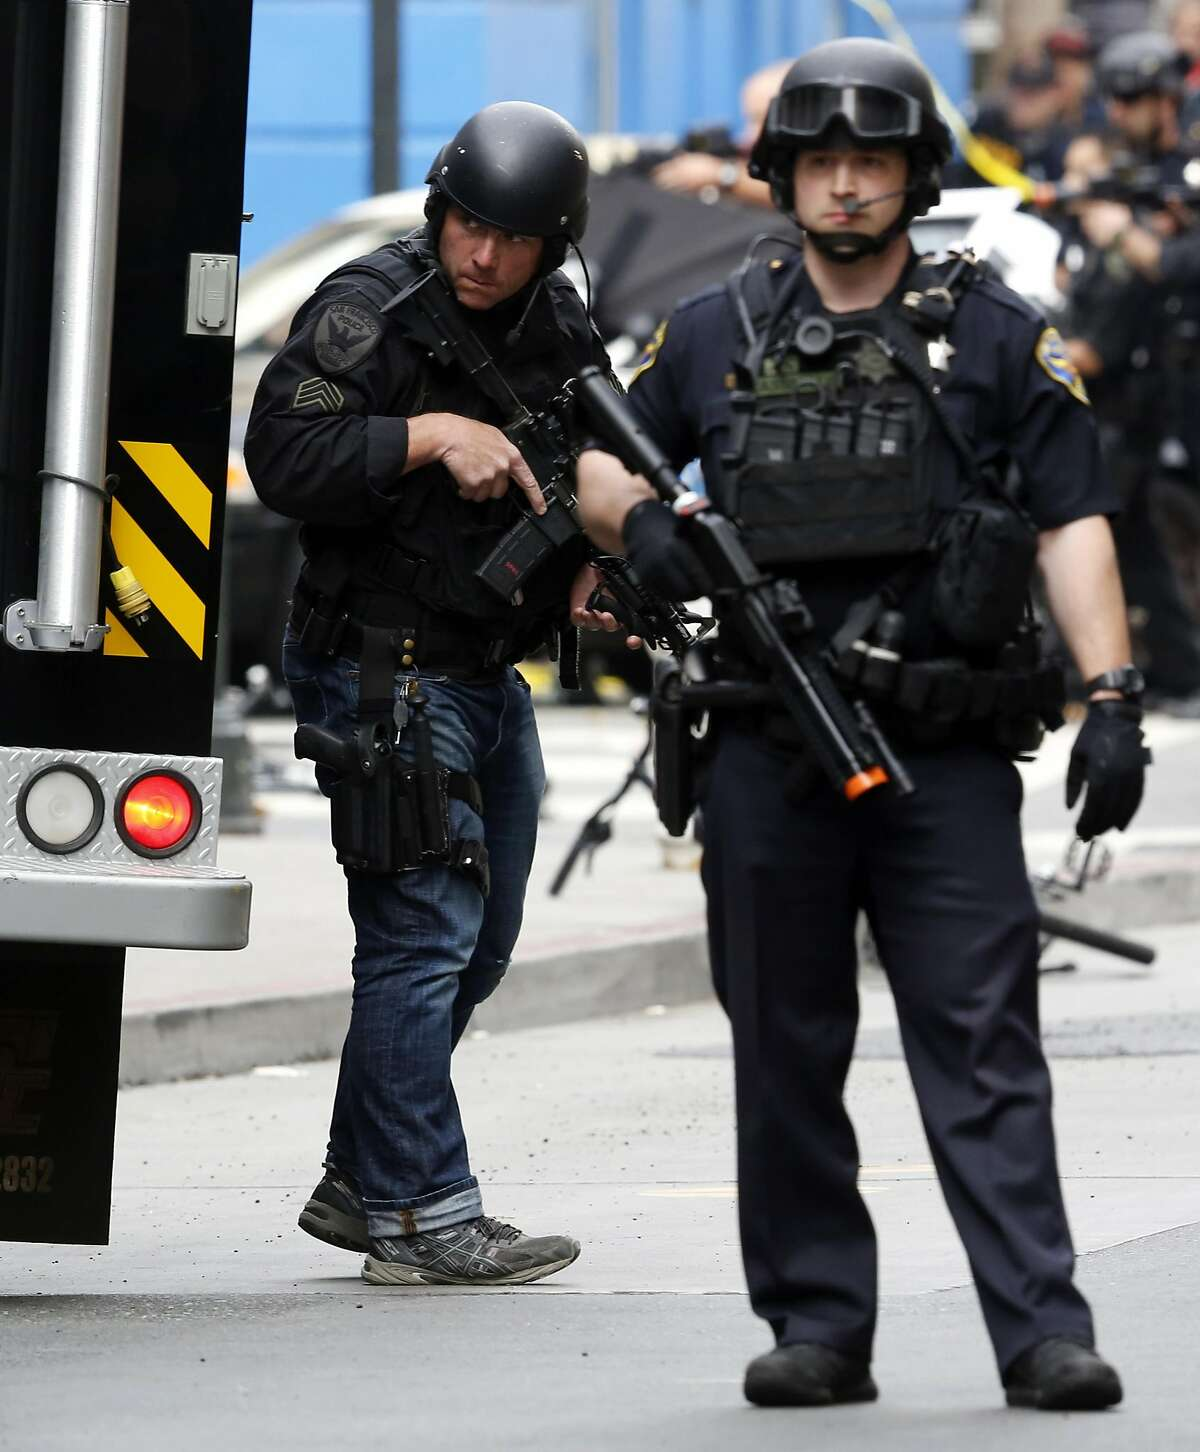 San Francisco Police Officers stay on alert during a standoff in San Francisco, California, on Wednesday, July 6, 2016.